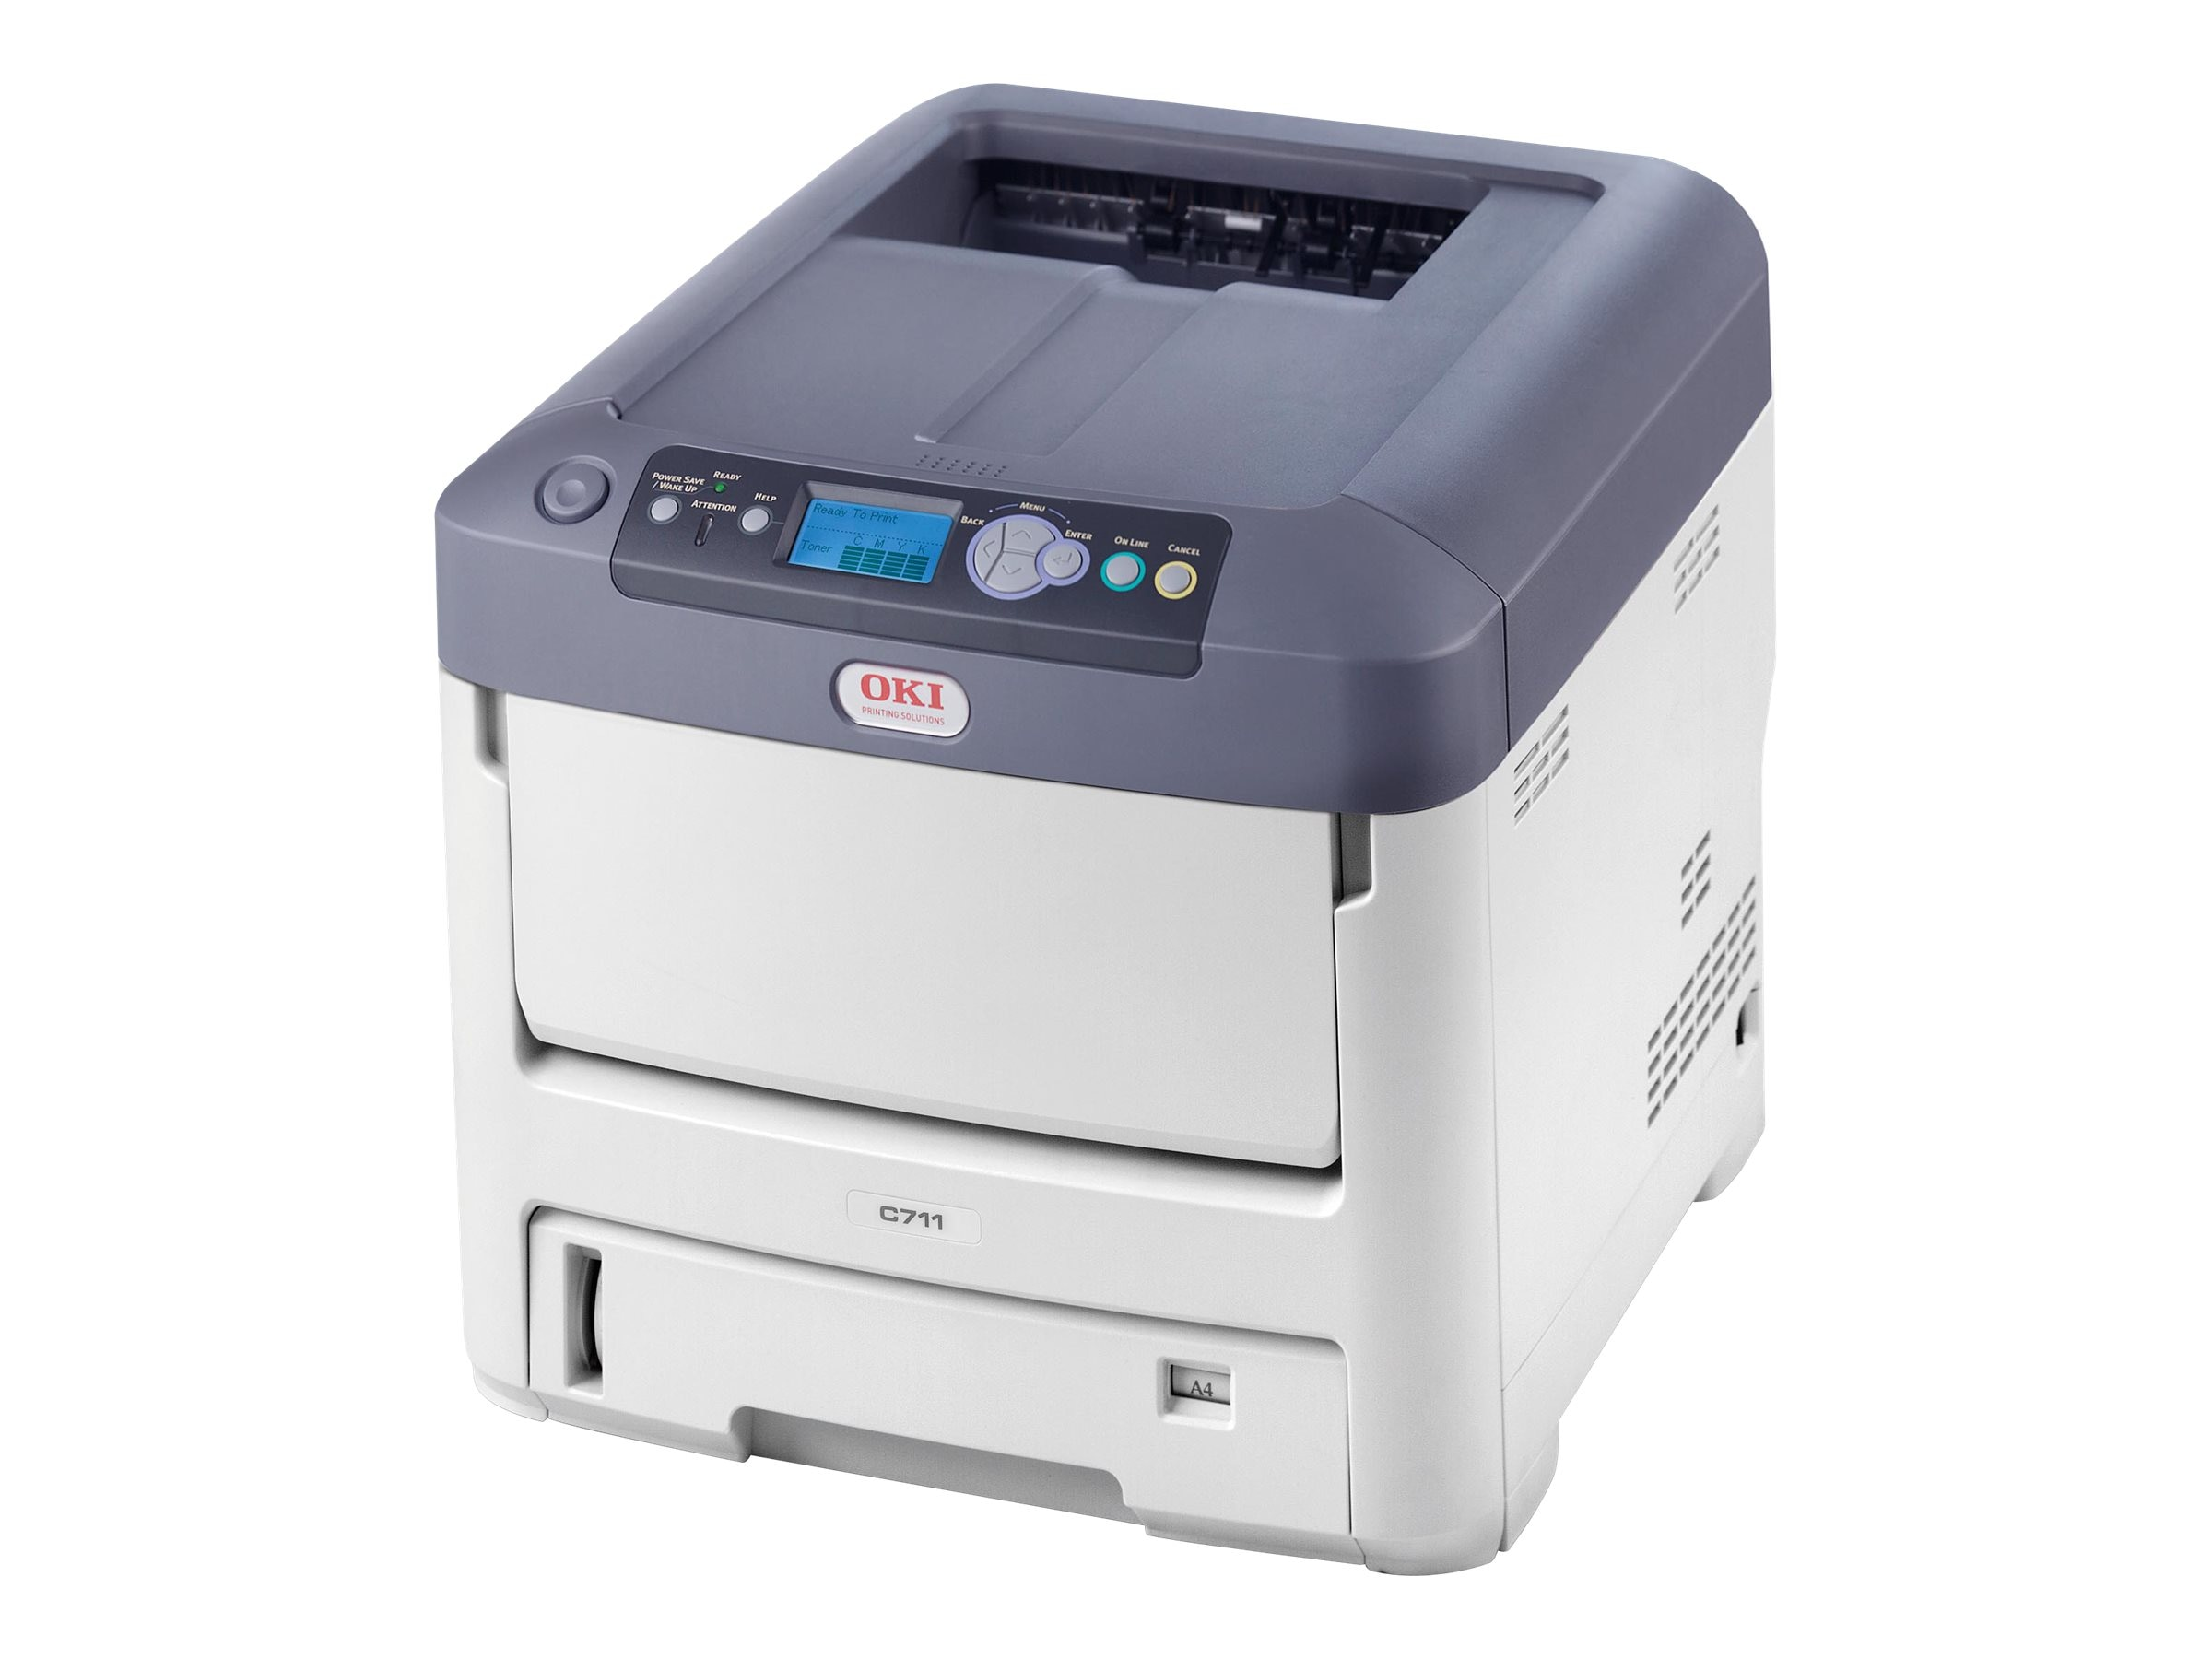 Oki C711N Digital Color Printer, 62433501, 10948401, Printers - Laser & LED (color)